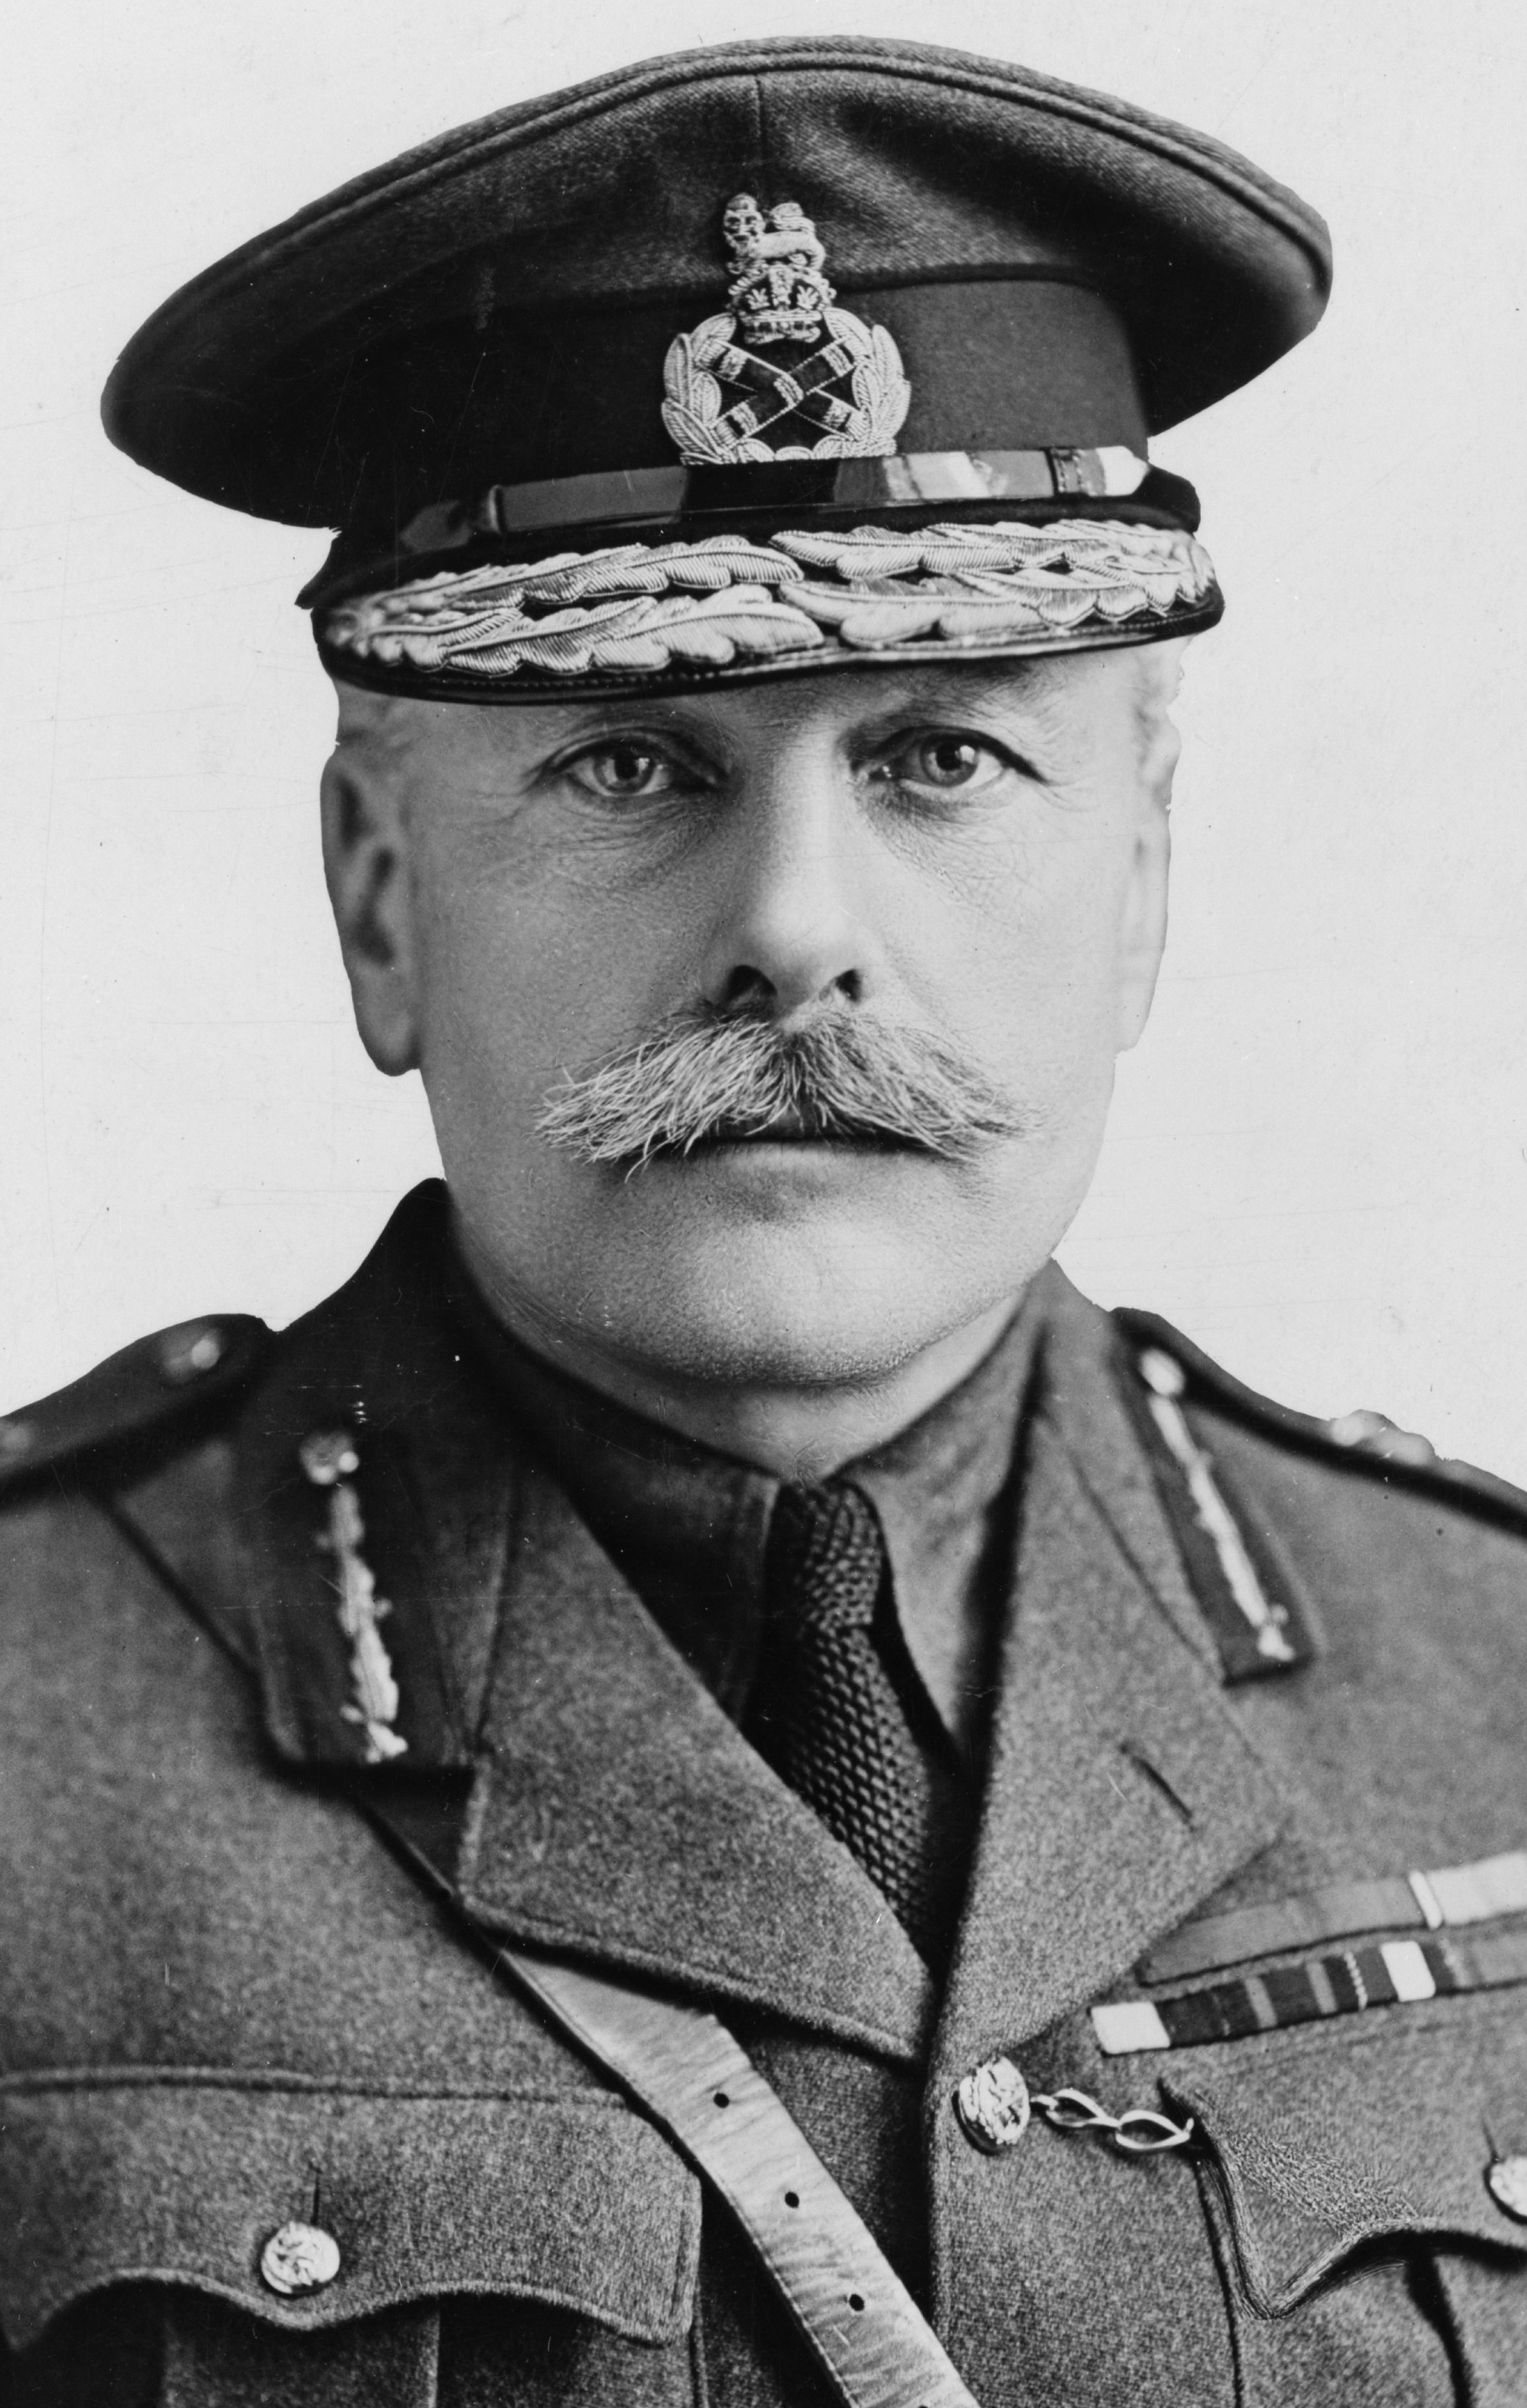 was earl douglas haig the butcher of the somme essay Casualty figures were extremely high, which earned haig the name tag 'butcher of the somme' by the end of the battle, in november 1916, the british had lost 420,000 soldiers critics claim that his poor decision making make him responsible for the deaths.